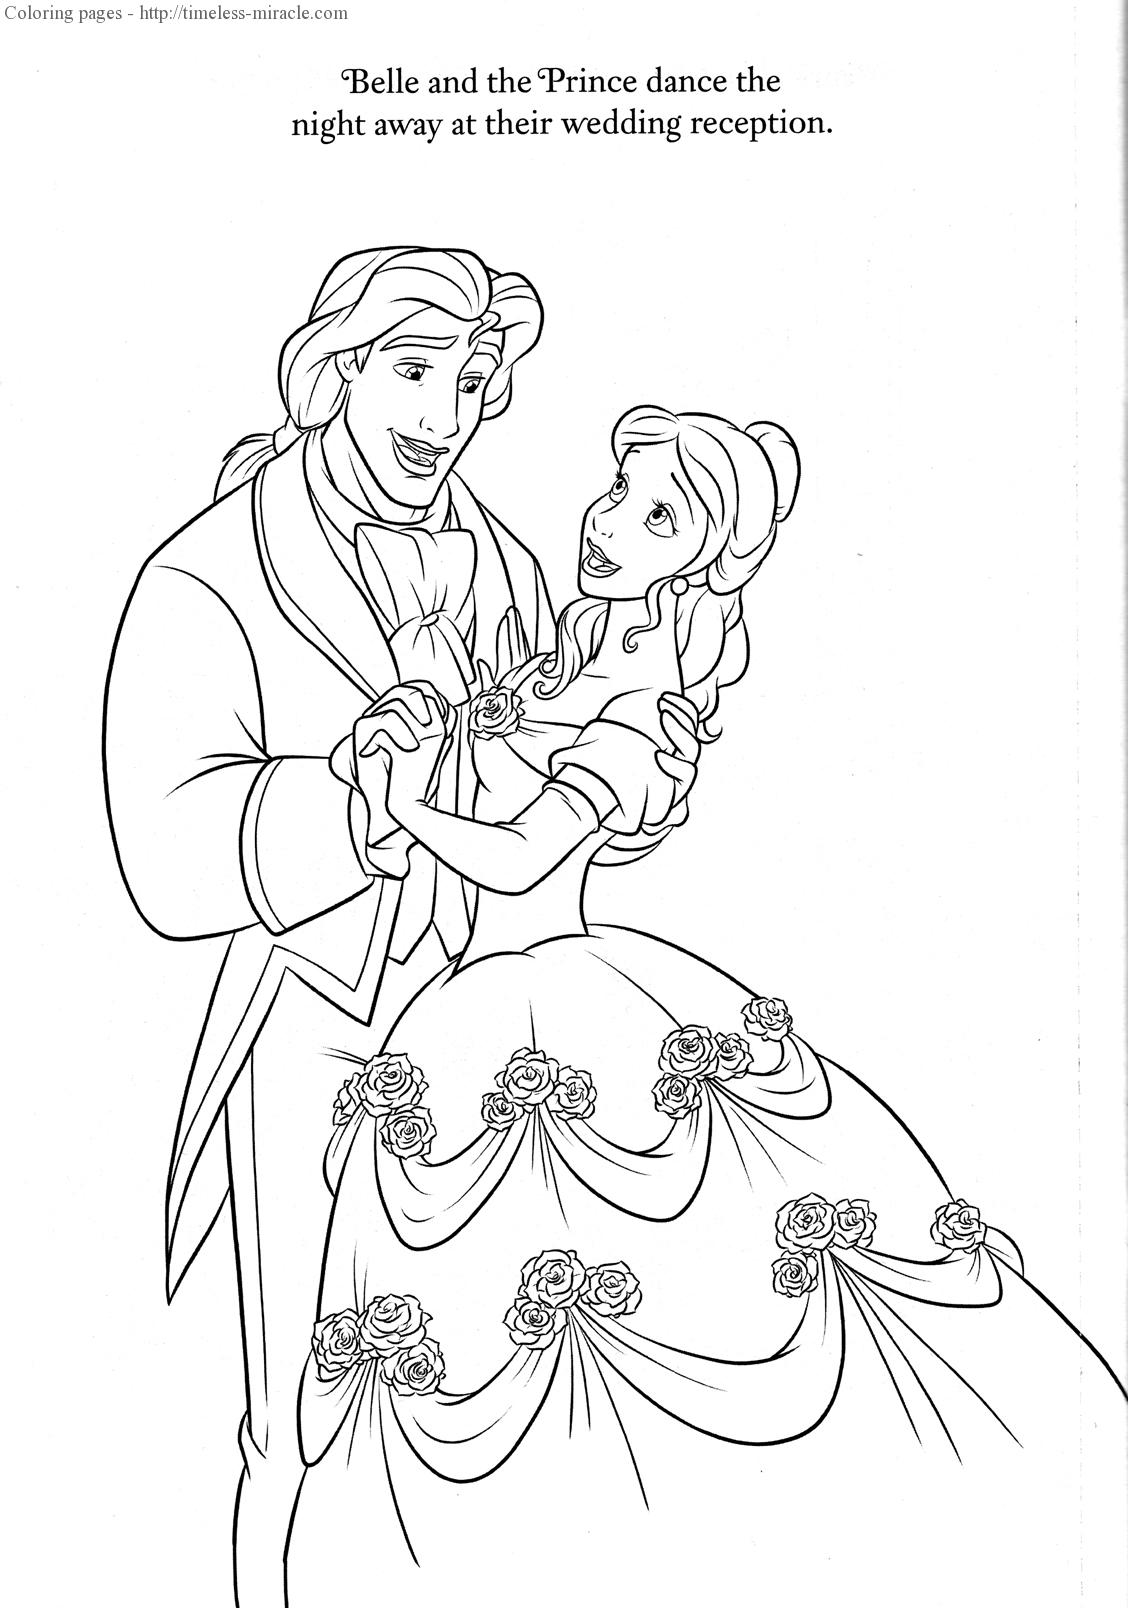 wedding day disney wedding coloring pages 116 best images about sleeping beauty on pinterest disney day wedding coloring wedding pages